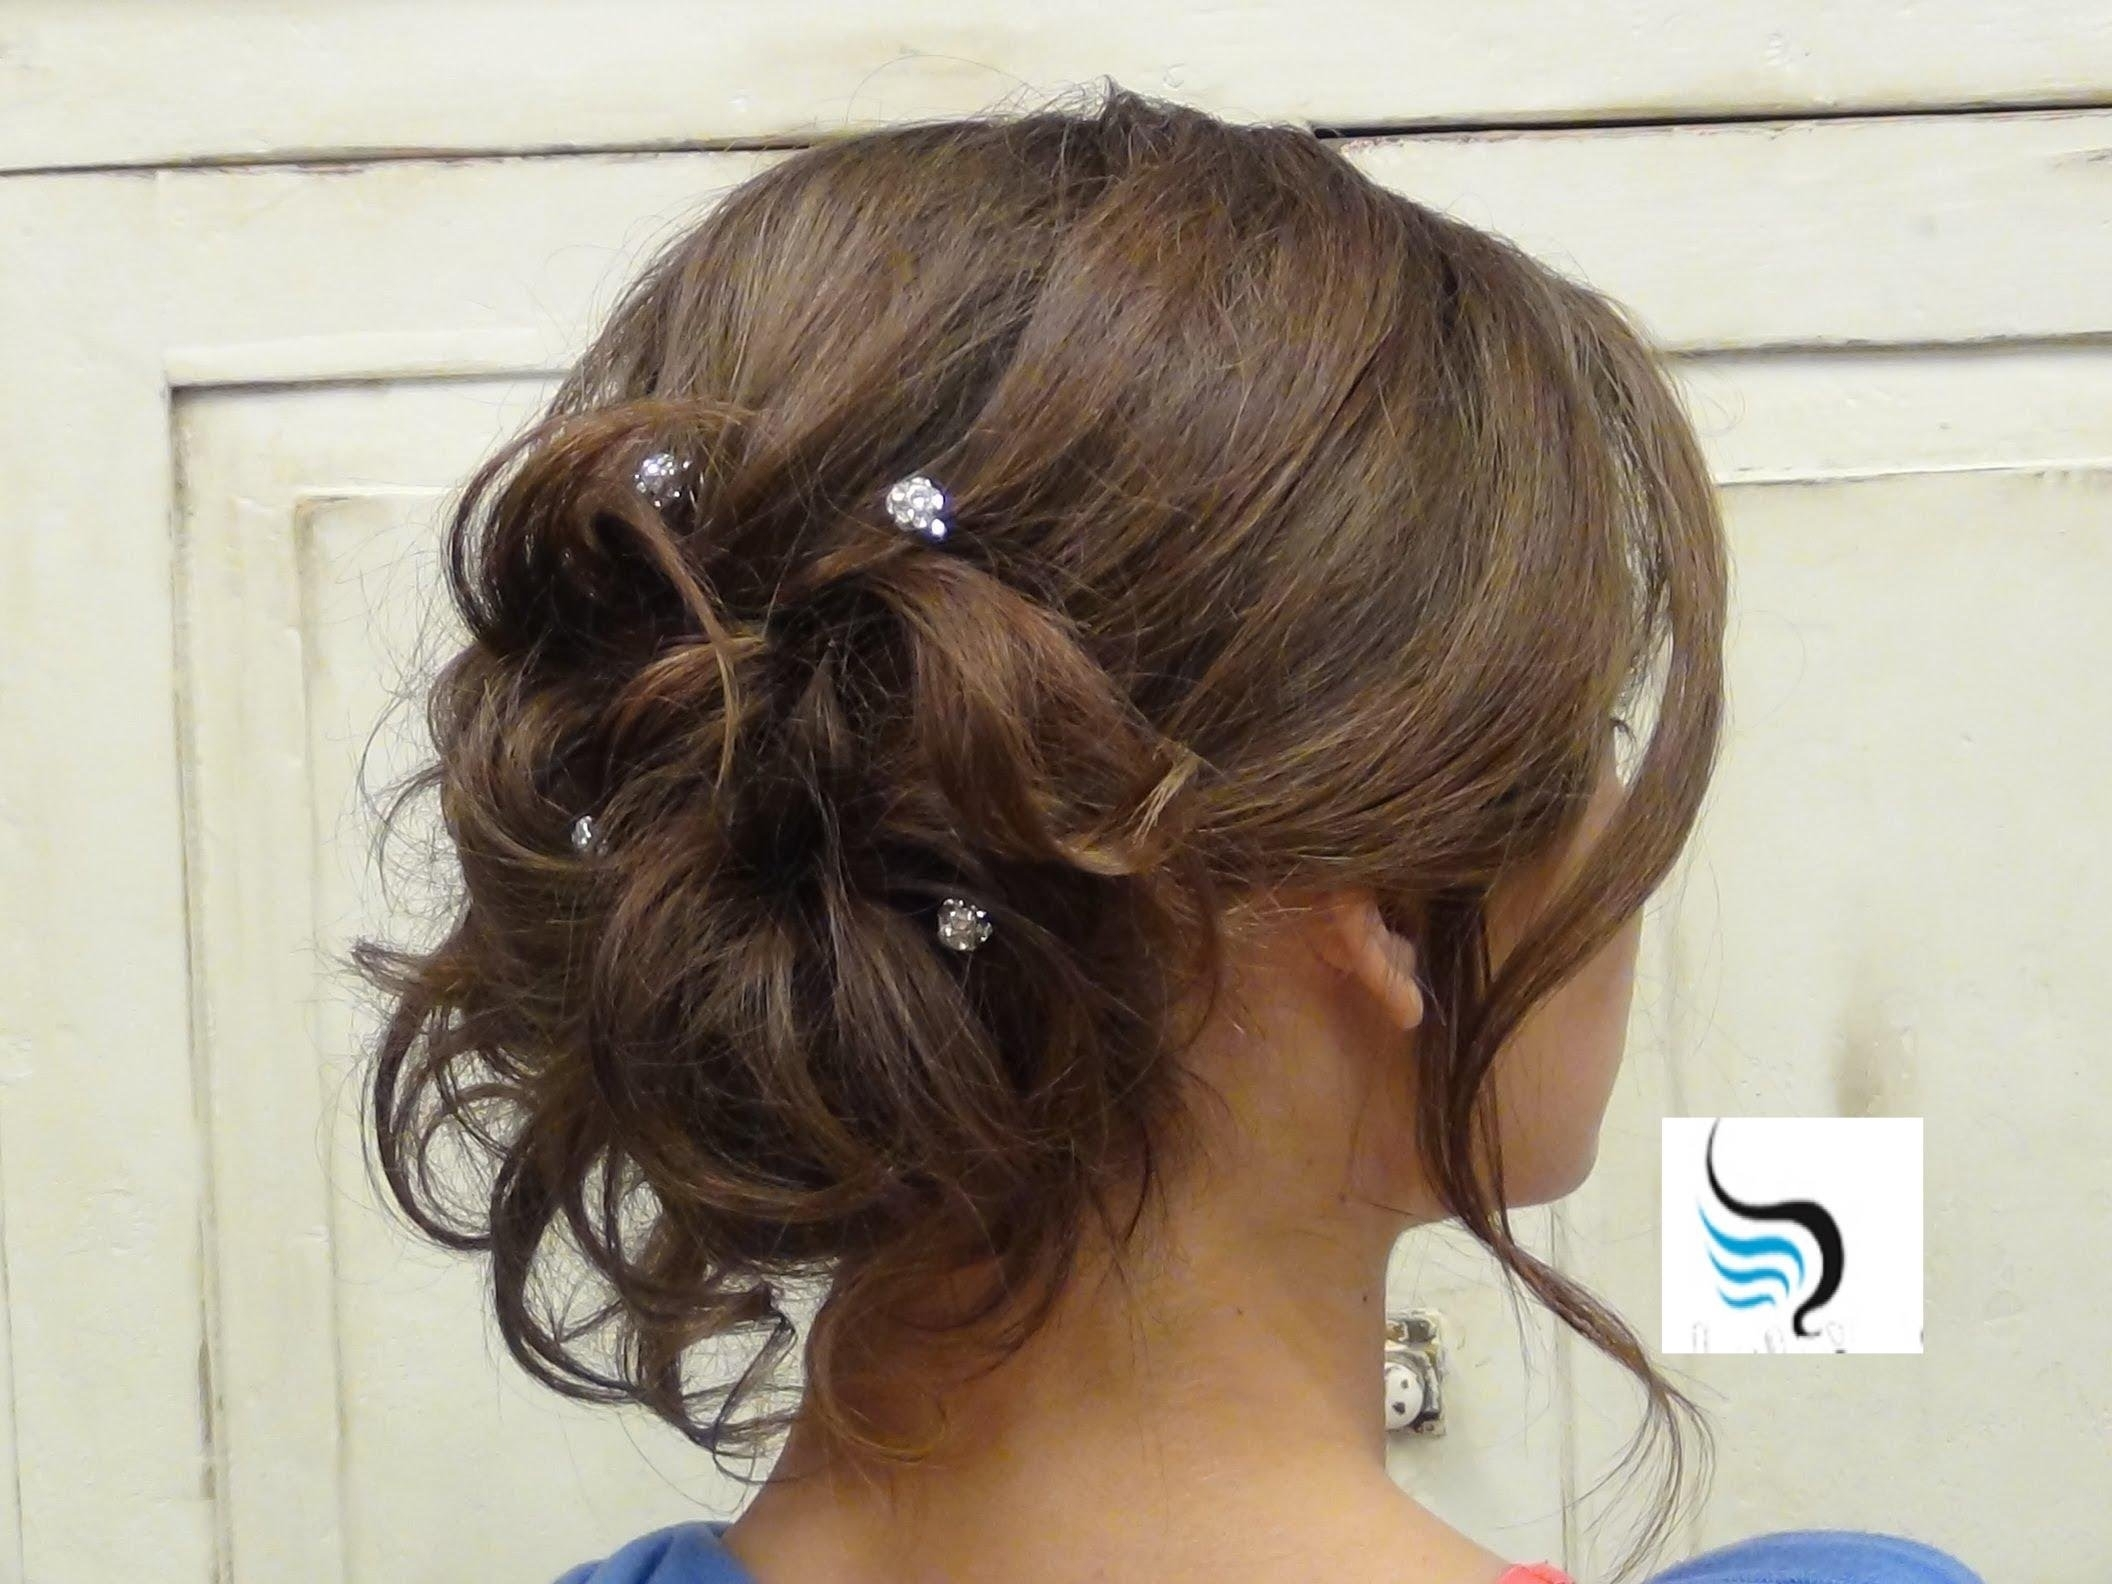 Soft Curled Updo) For Long Hair Prom Or Wedding Hairstyles – Youtube In Prom Updo Hairstyles (View 15 of 15)